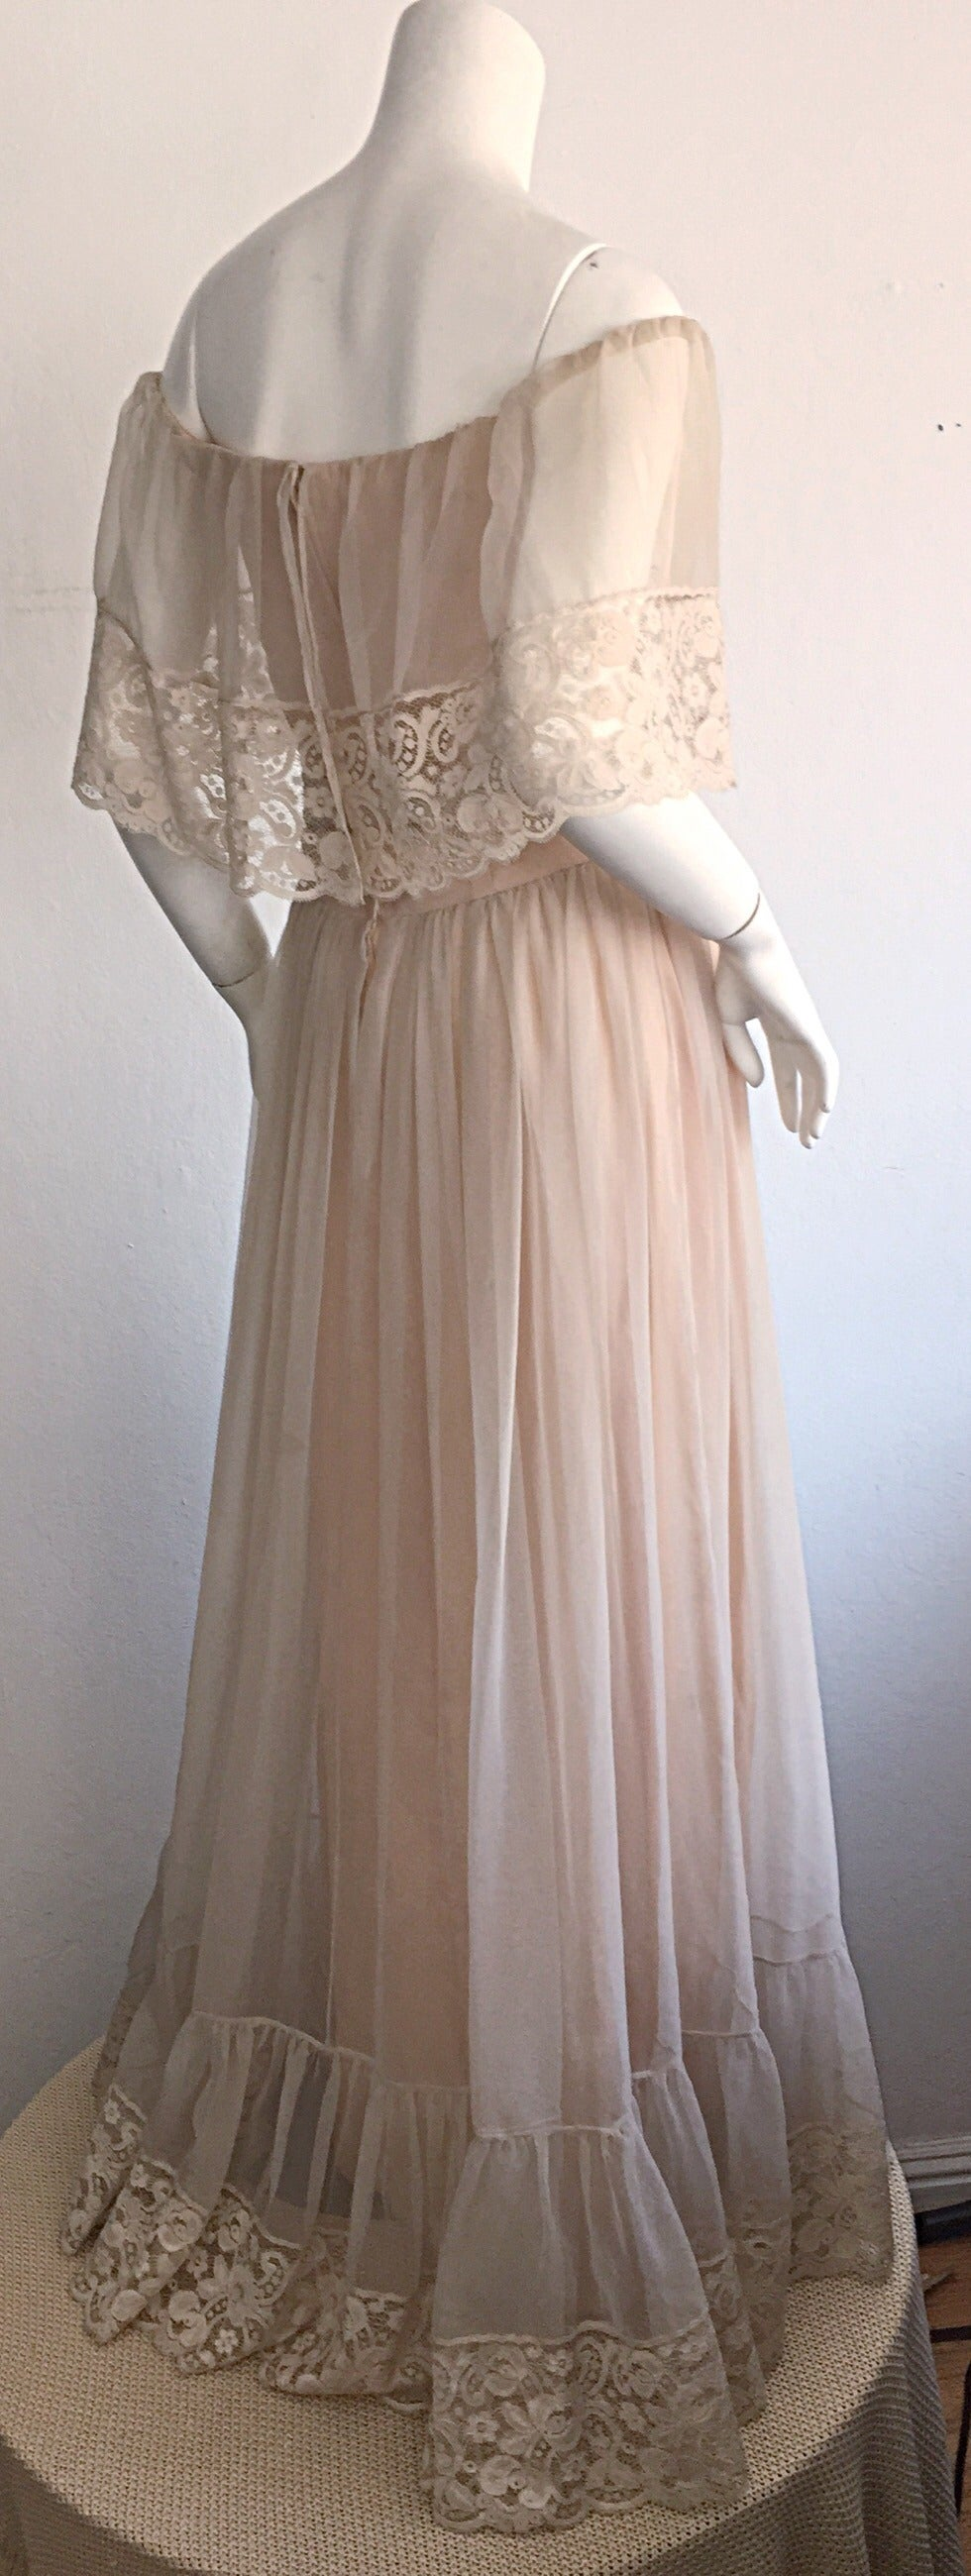 Women's Beautiful Ethereal Vintage Victor Costa Cream Lace Bohemian Wedding Dress / Gown For Sale